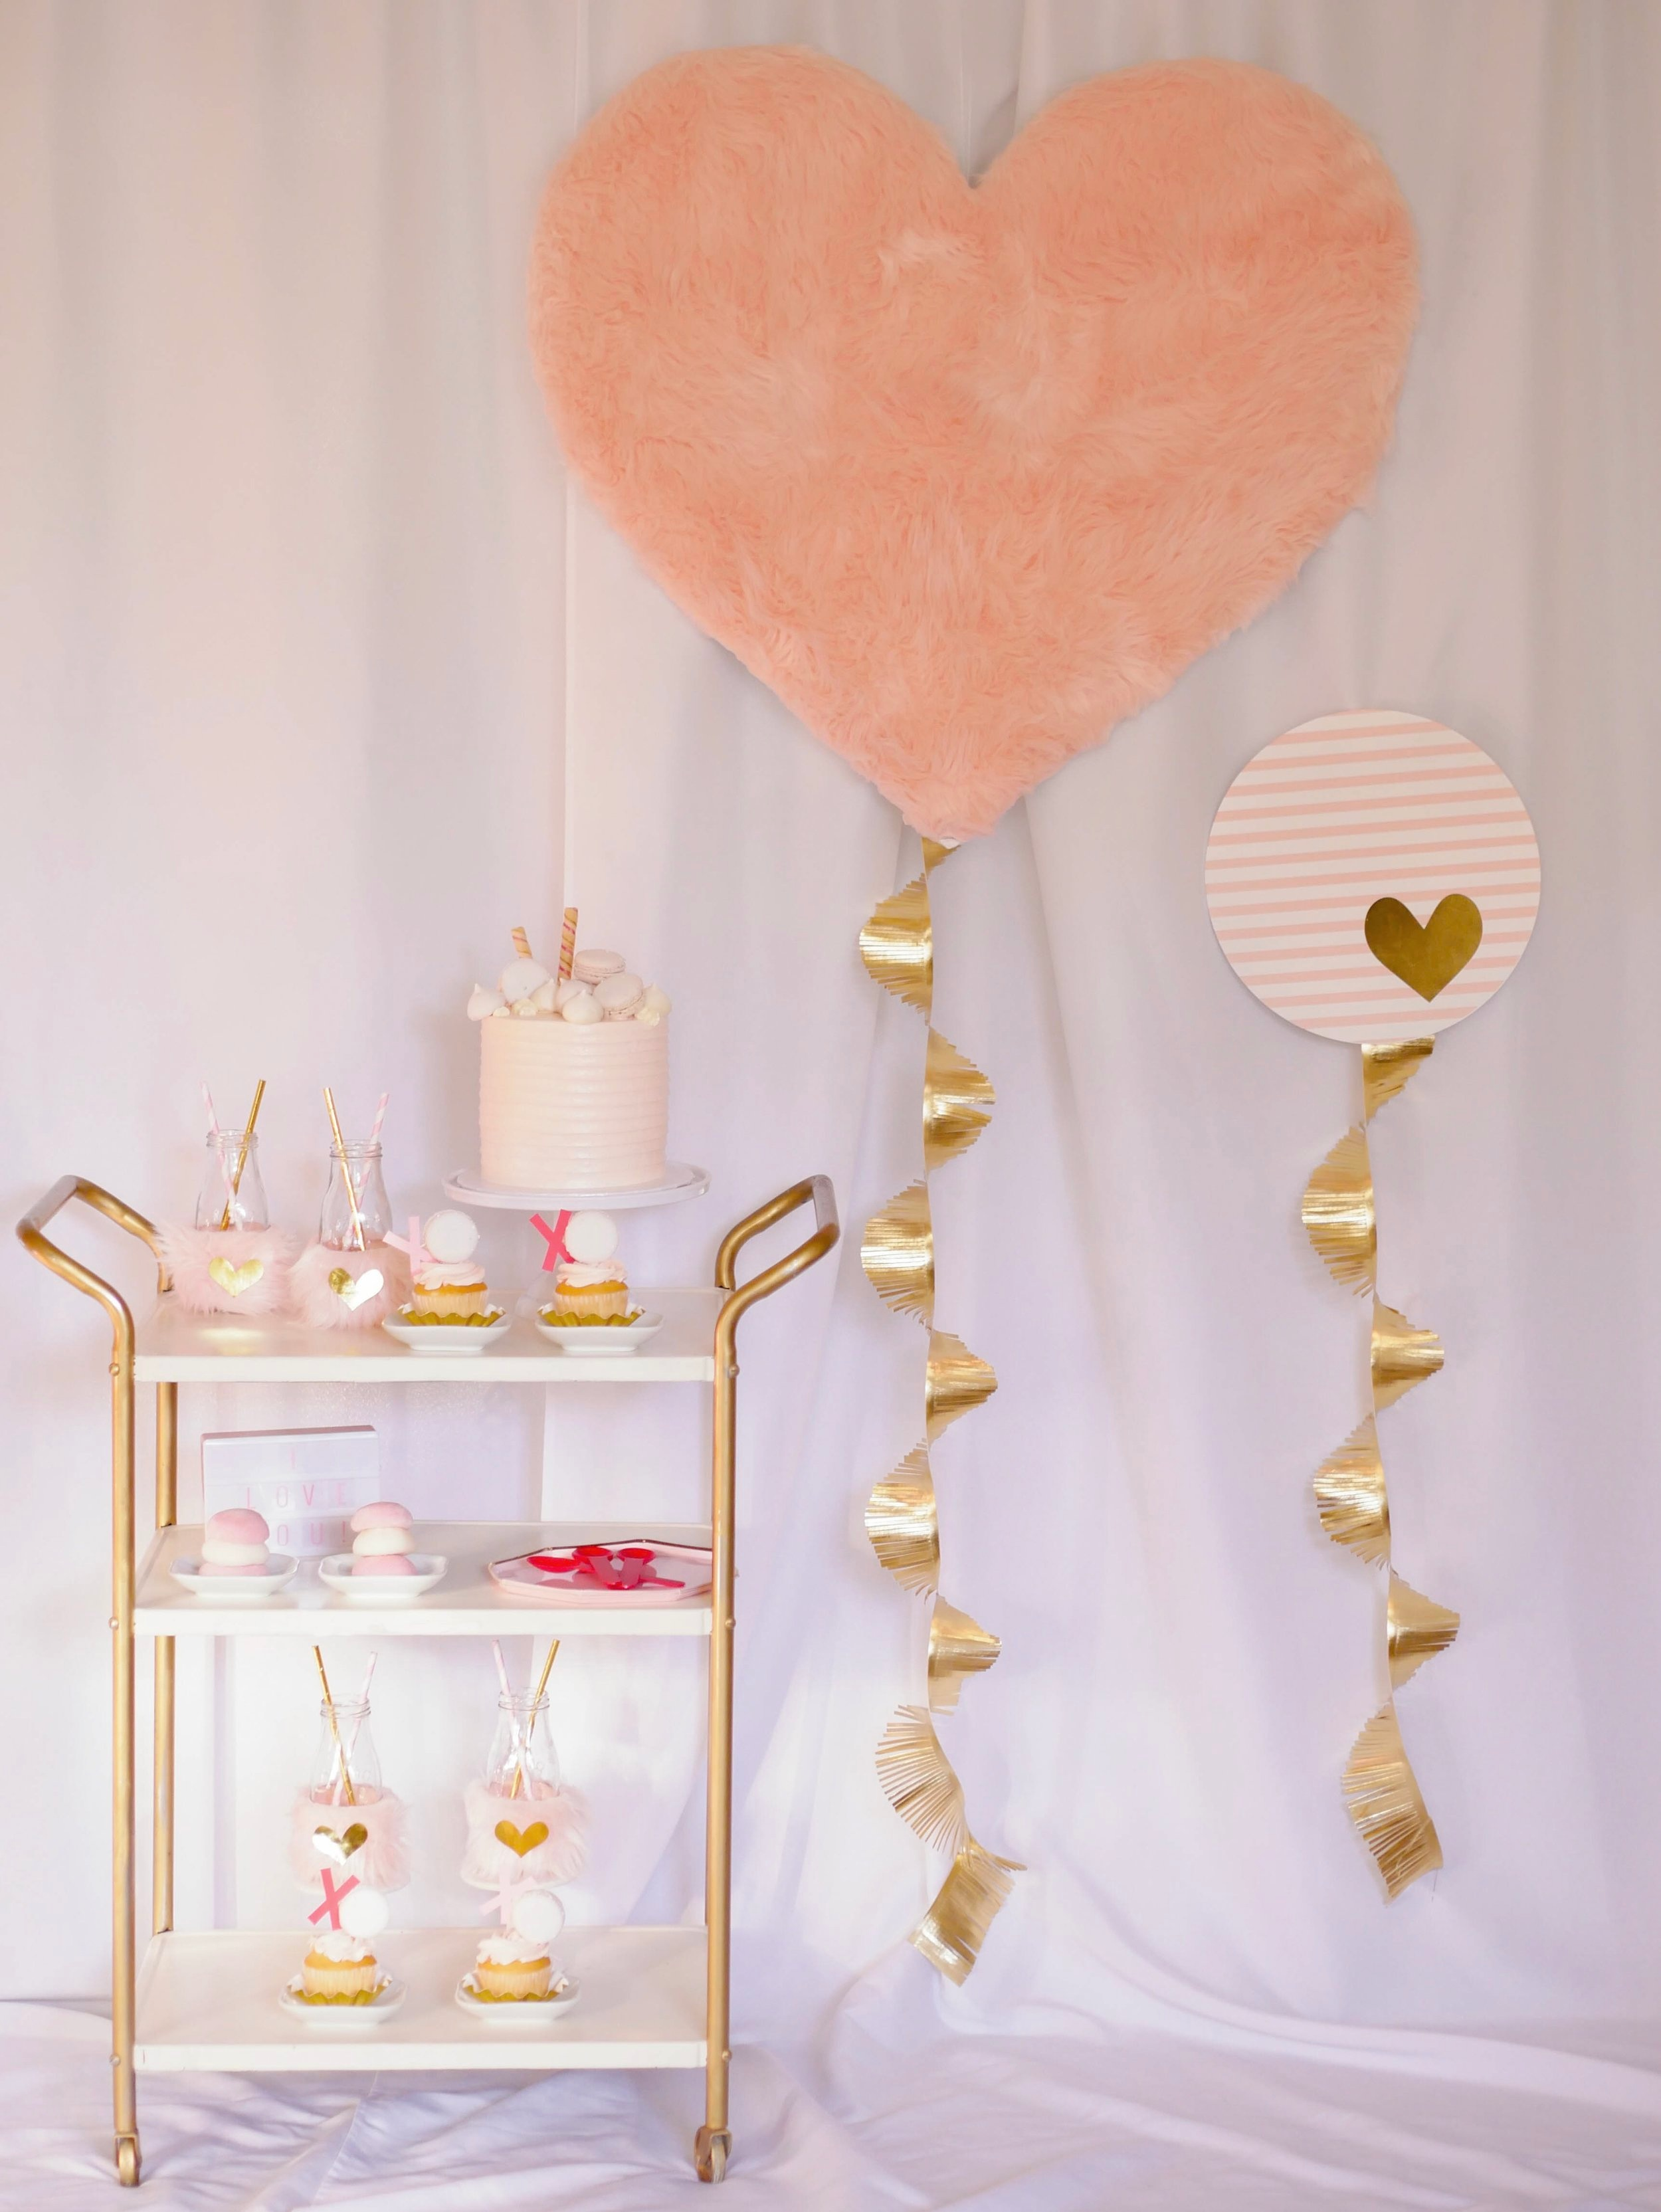 Adorable Pink and Red Dessert Cart idea from Mint Event Design-Austin based party stylist